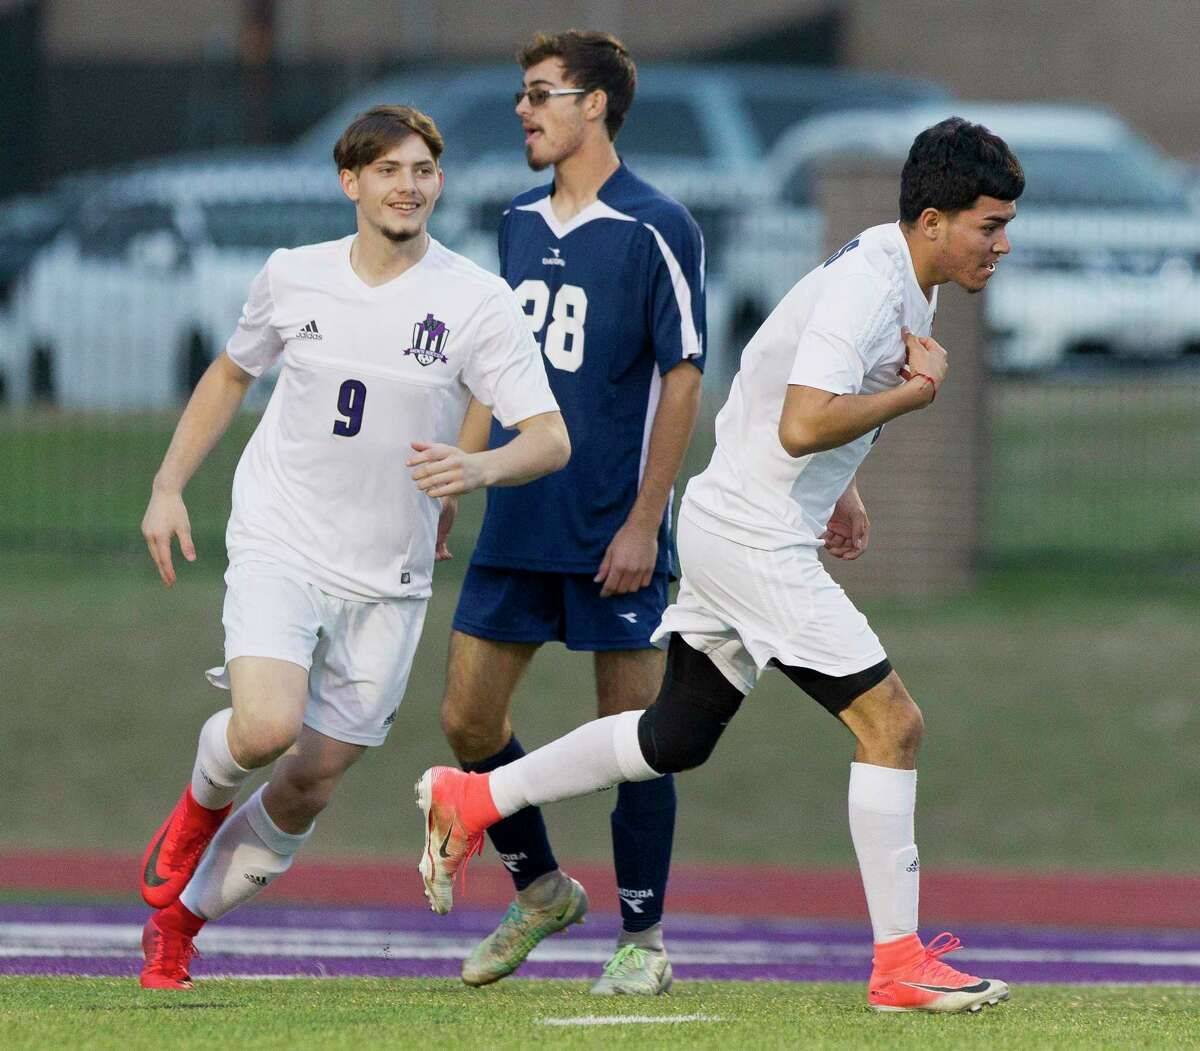 Willis' Luis Alberto Torres (3) reacts after scoring a goal beside Austin Eugene Phillips (9) in the first period of a match during the Willis Wildkat Showcase at Lynn Lucas Middle School, Saturday, Jan. 6, 2018, in Willis.